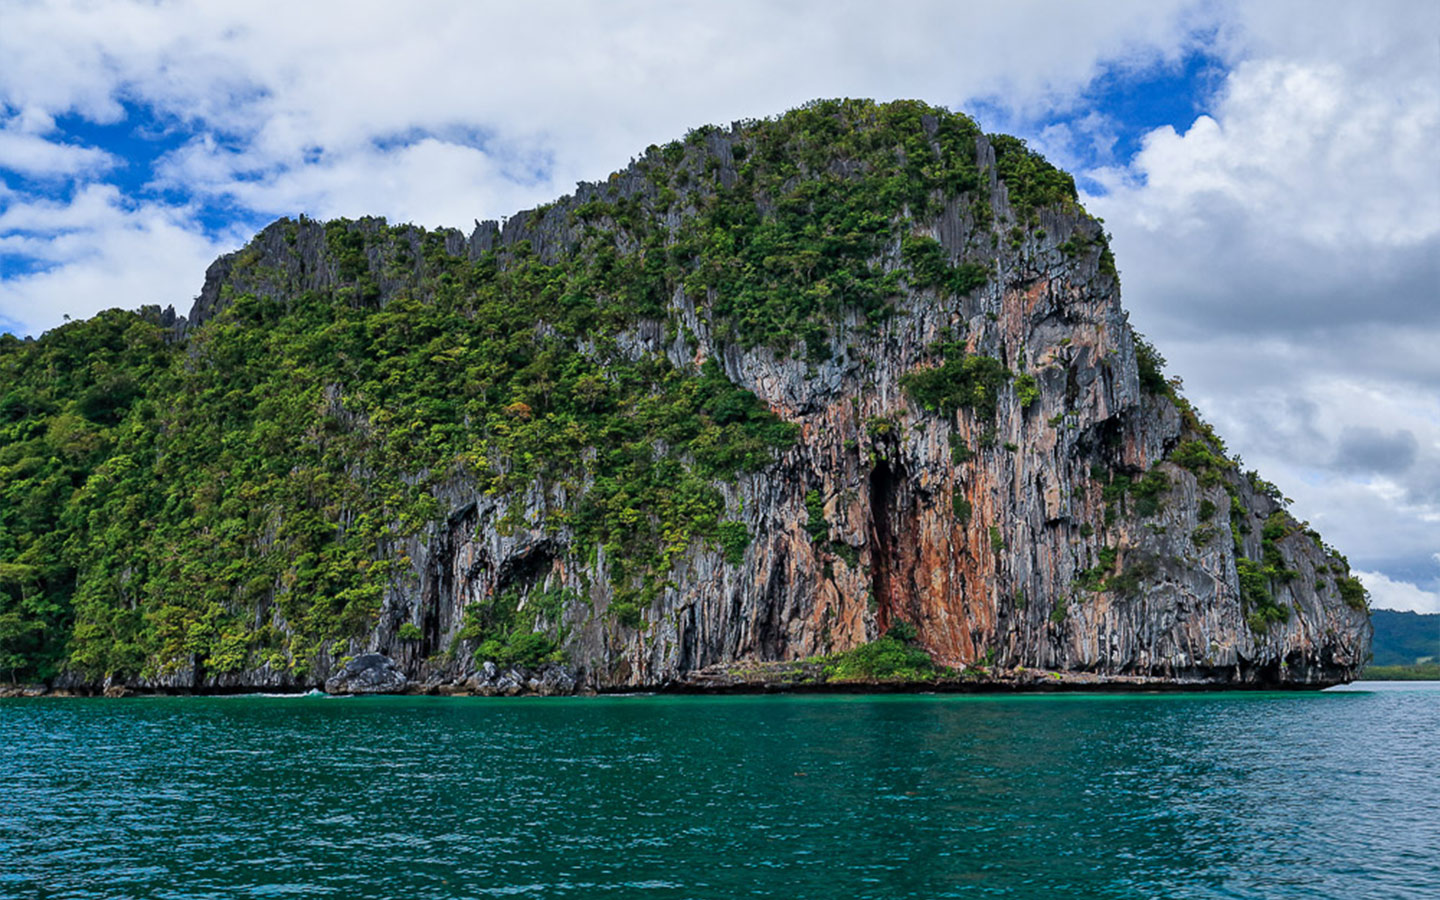 eroded limestone cliffs in a small Palawan lagoon